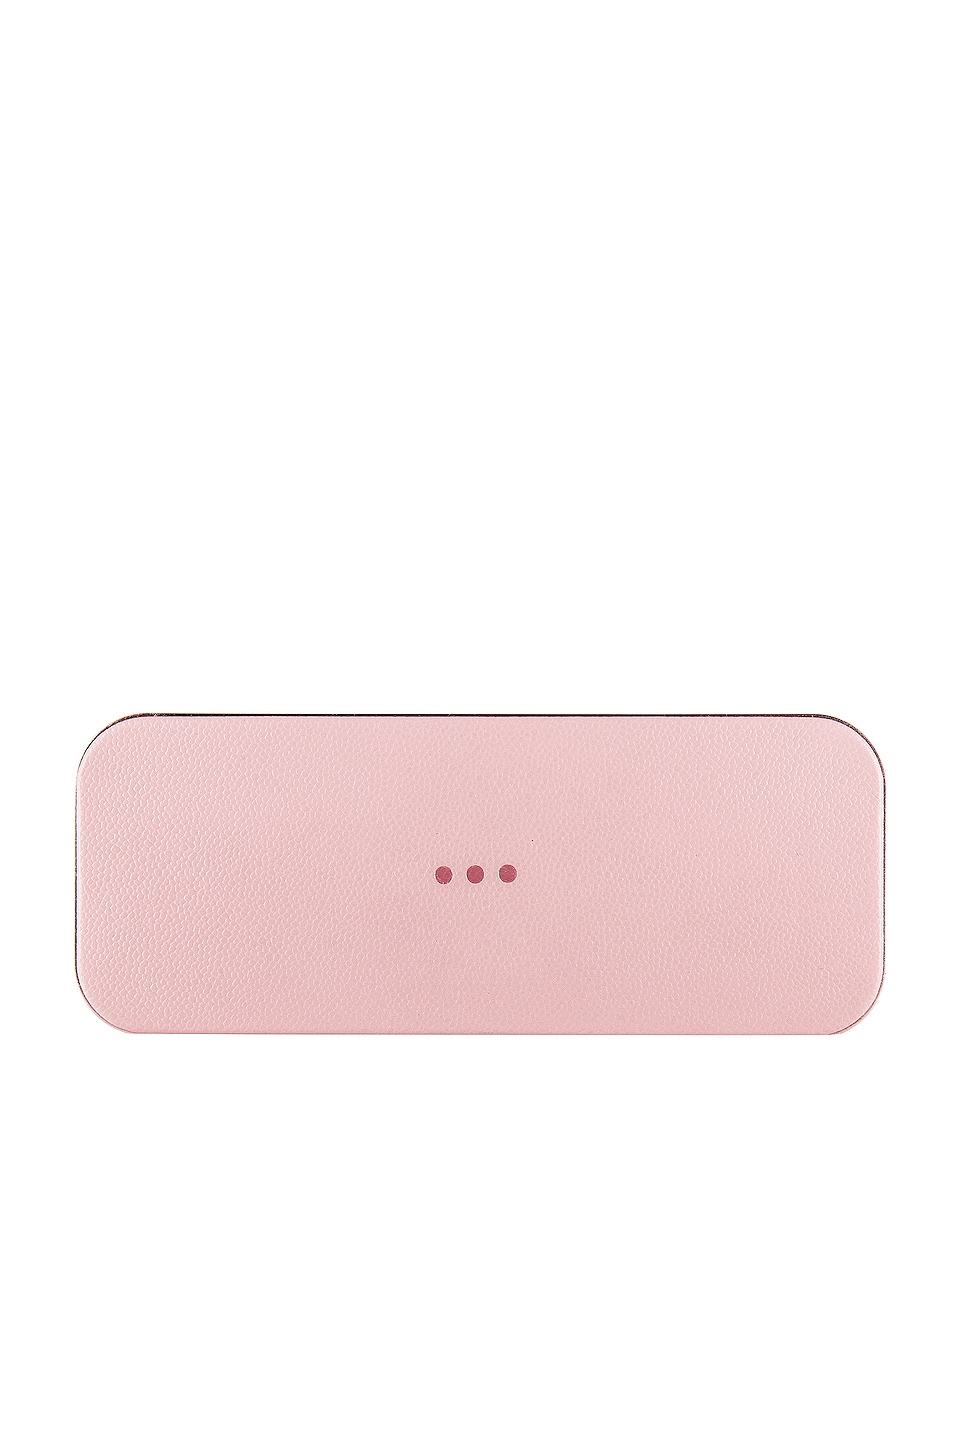 Courant Catch:2 Wireless Charging Tray in Dusty Rose